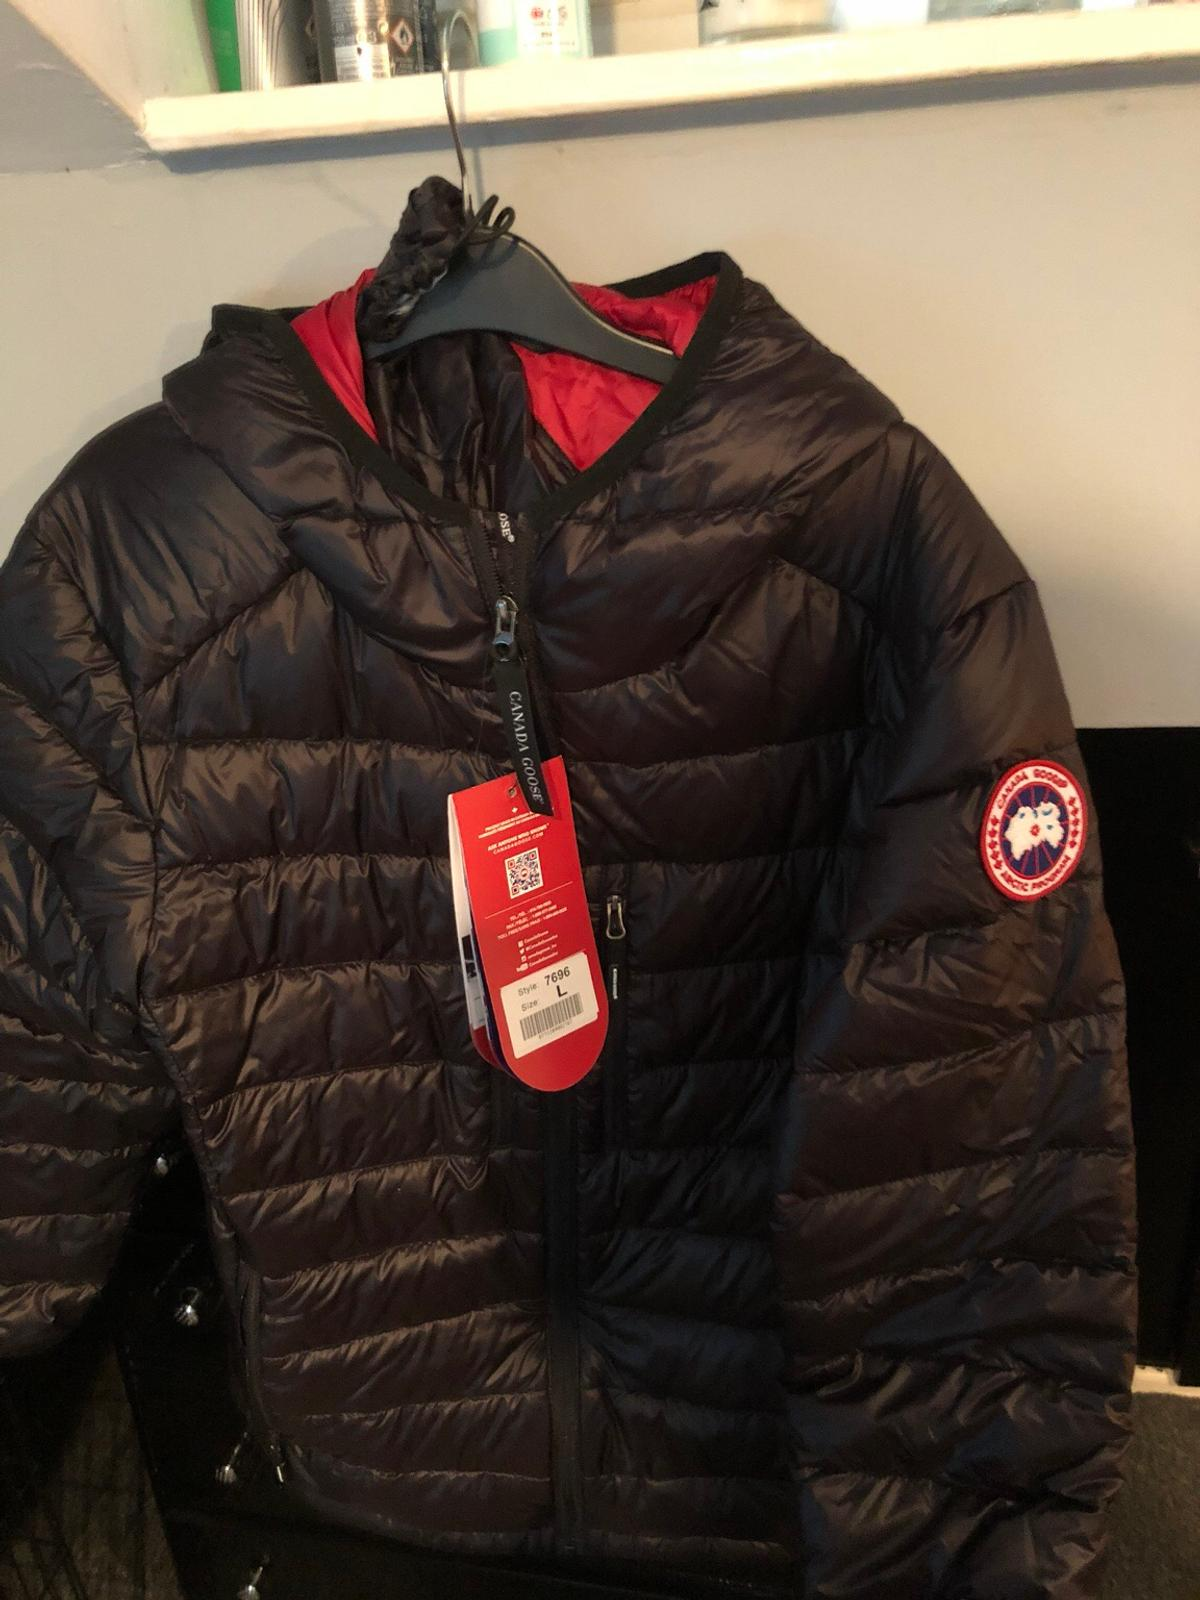 popular brand buy good lowest price Canada goose bubble jacket in BL9 Bury for £65.00 for sale | Shpock